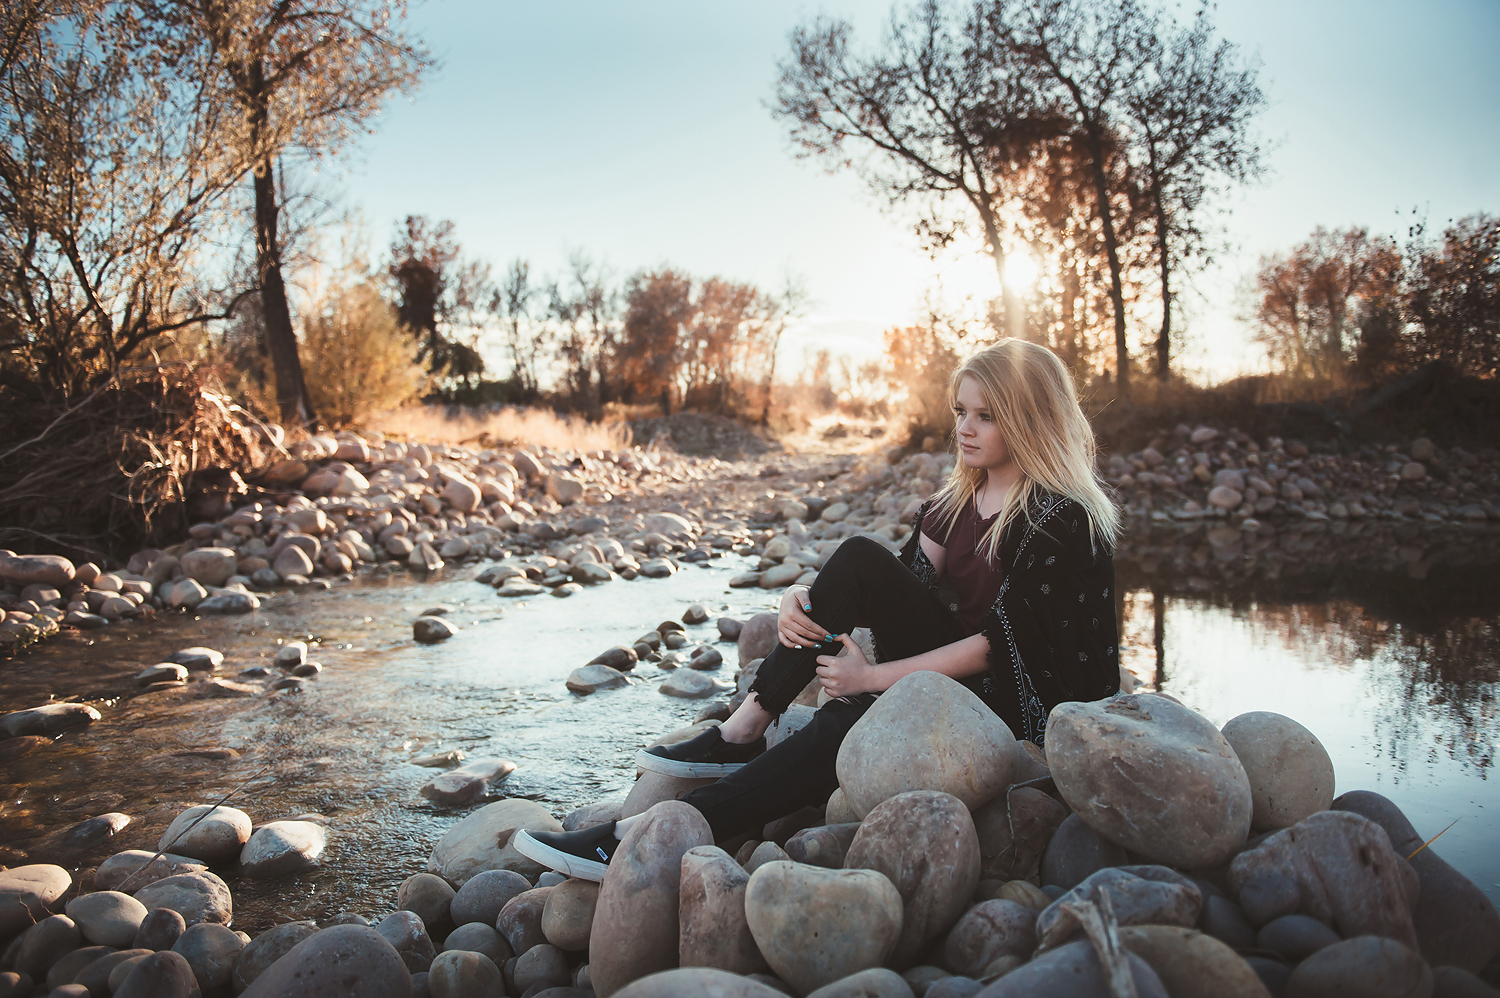 Girl sitting on rocks looking out over river